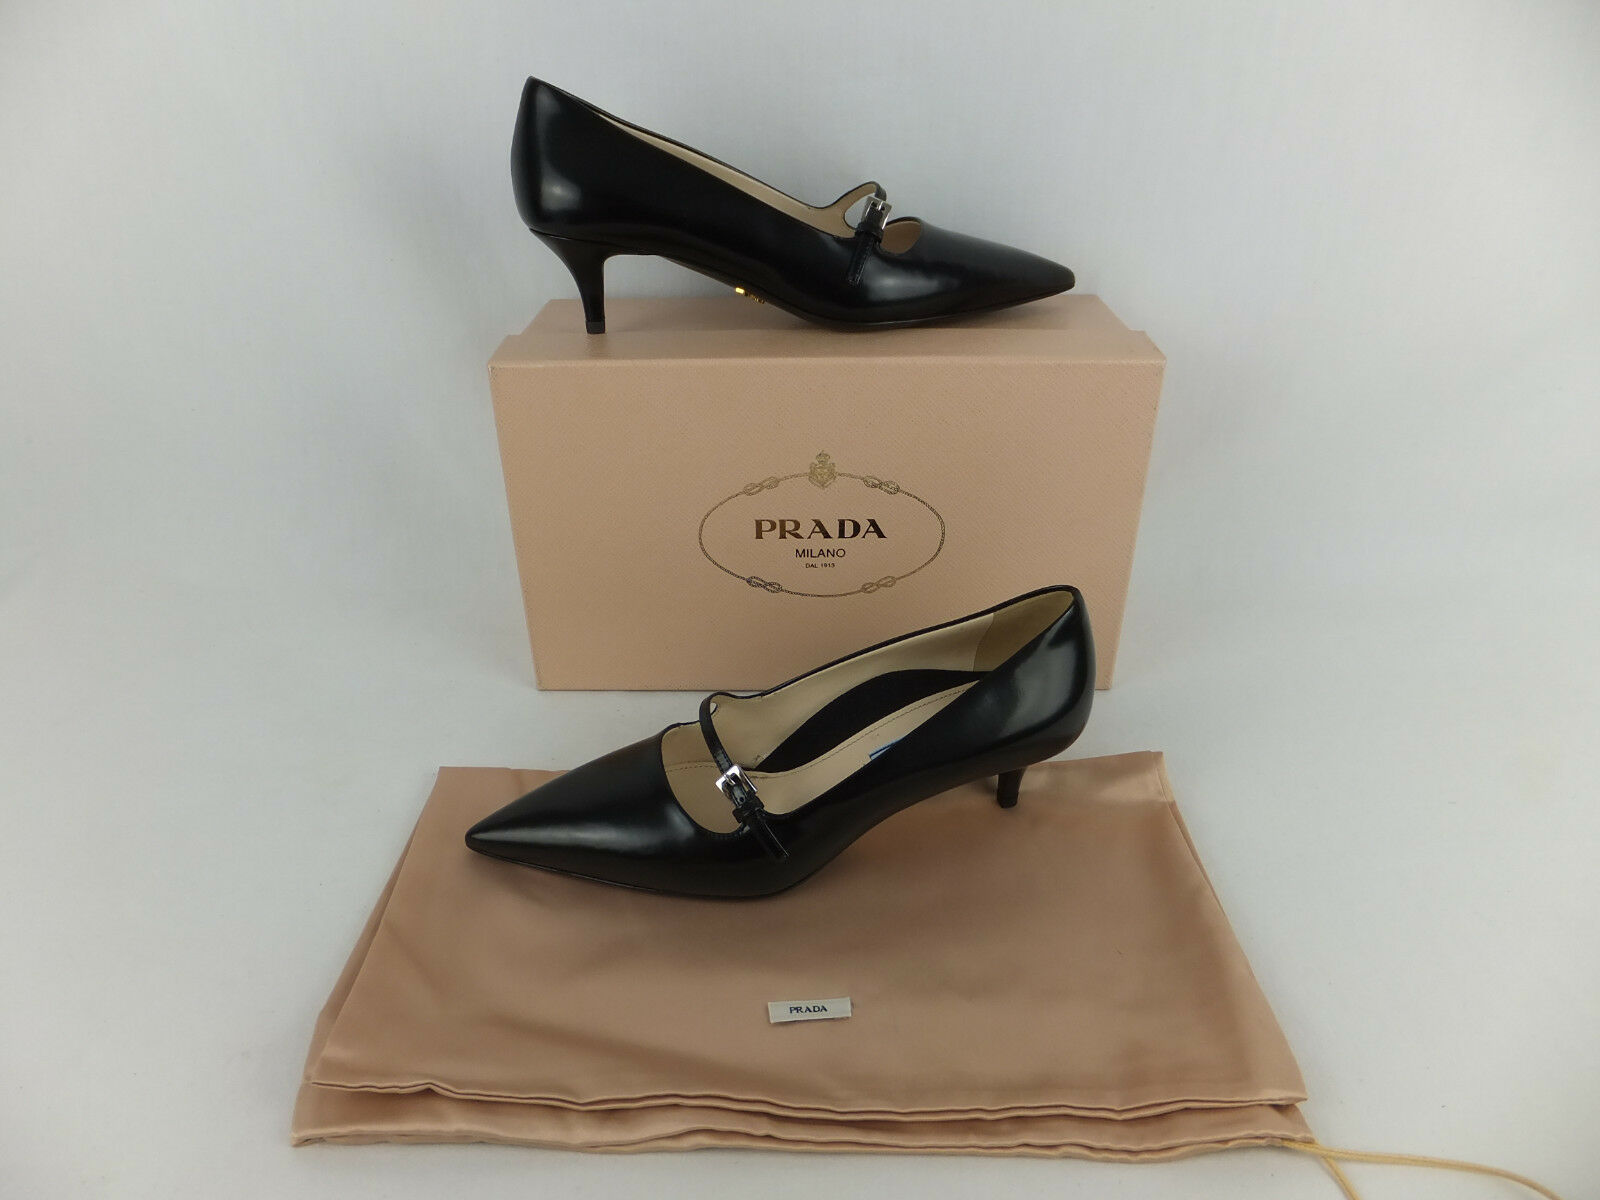 PRADA Mary Jane Pumps - 38 - black - neu mit Karton - Riemchen Pumps